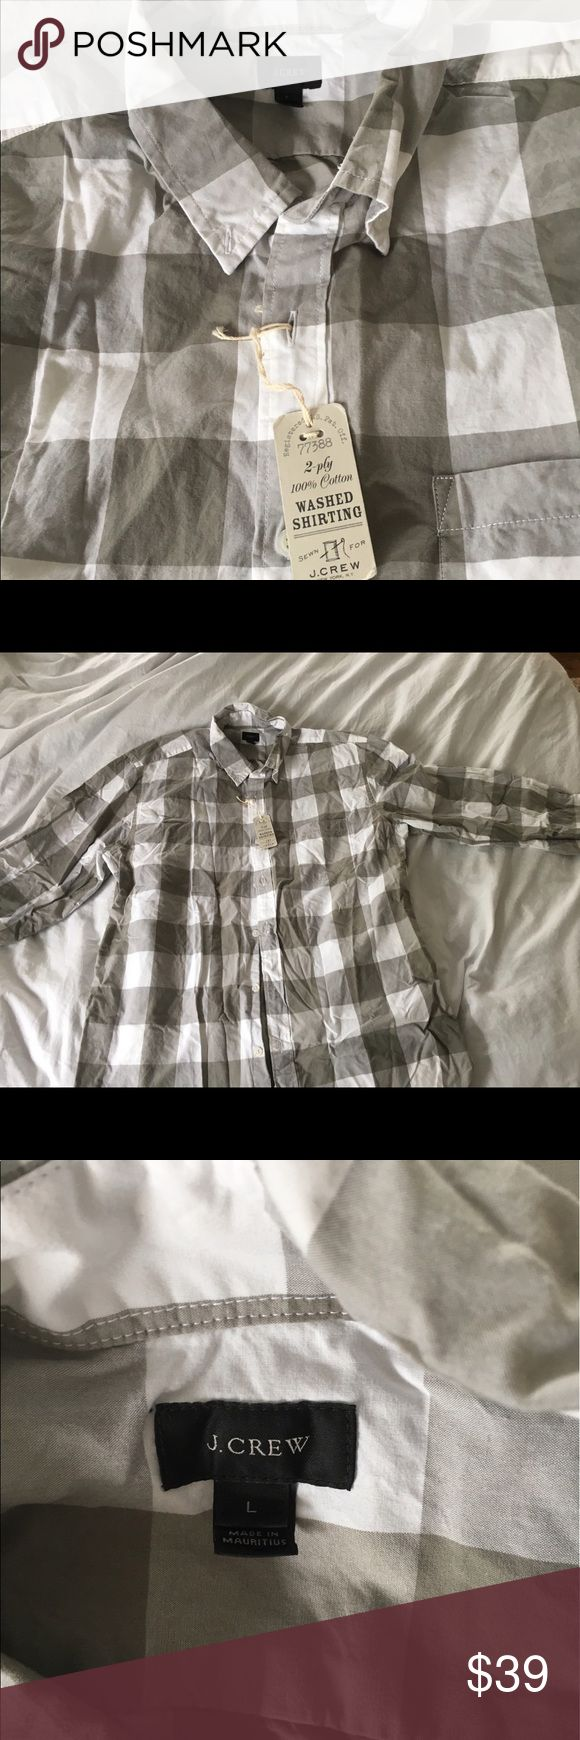 J Crew men's shirt Grey and white large checks size L button down shirt. New with tags. Wrinkled but in otherwise perfect condition. J Crew Shirts Casual Button Down Shirts